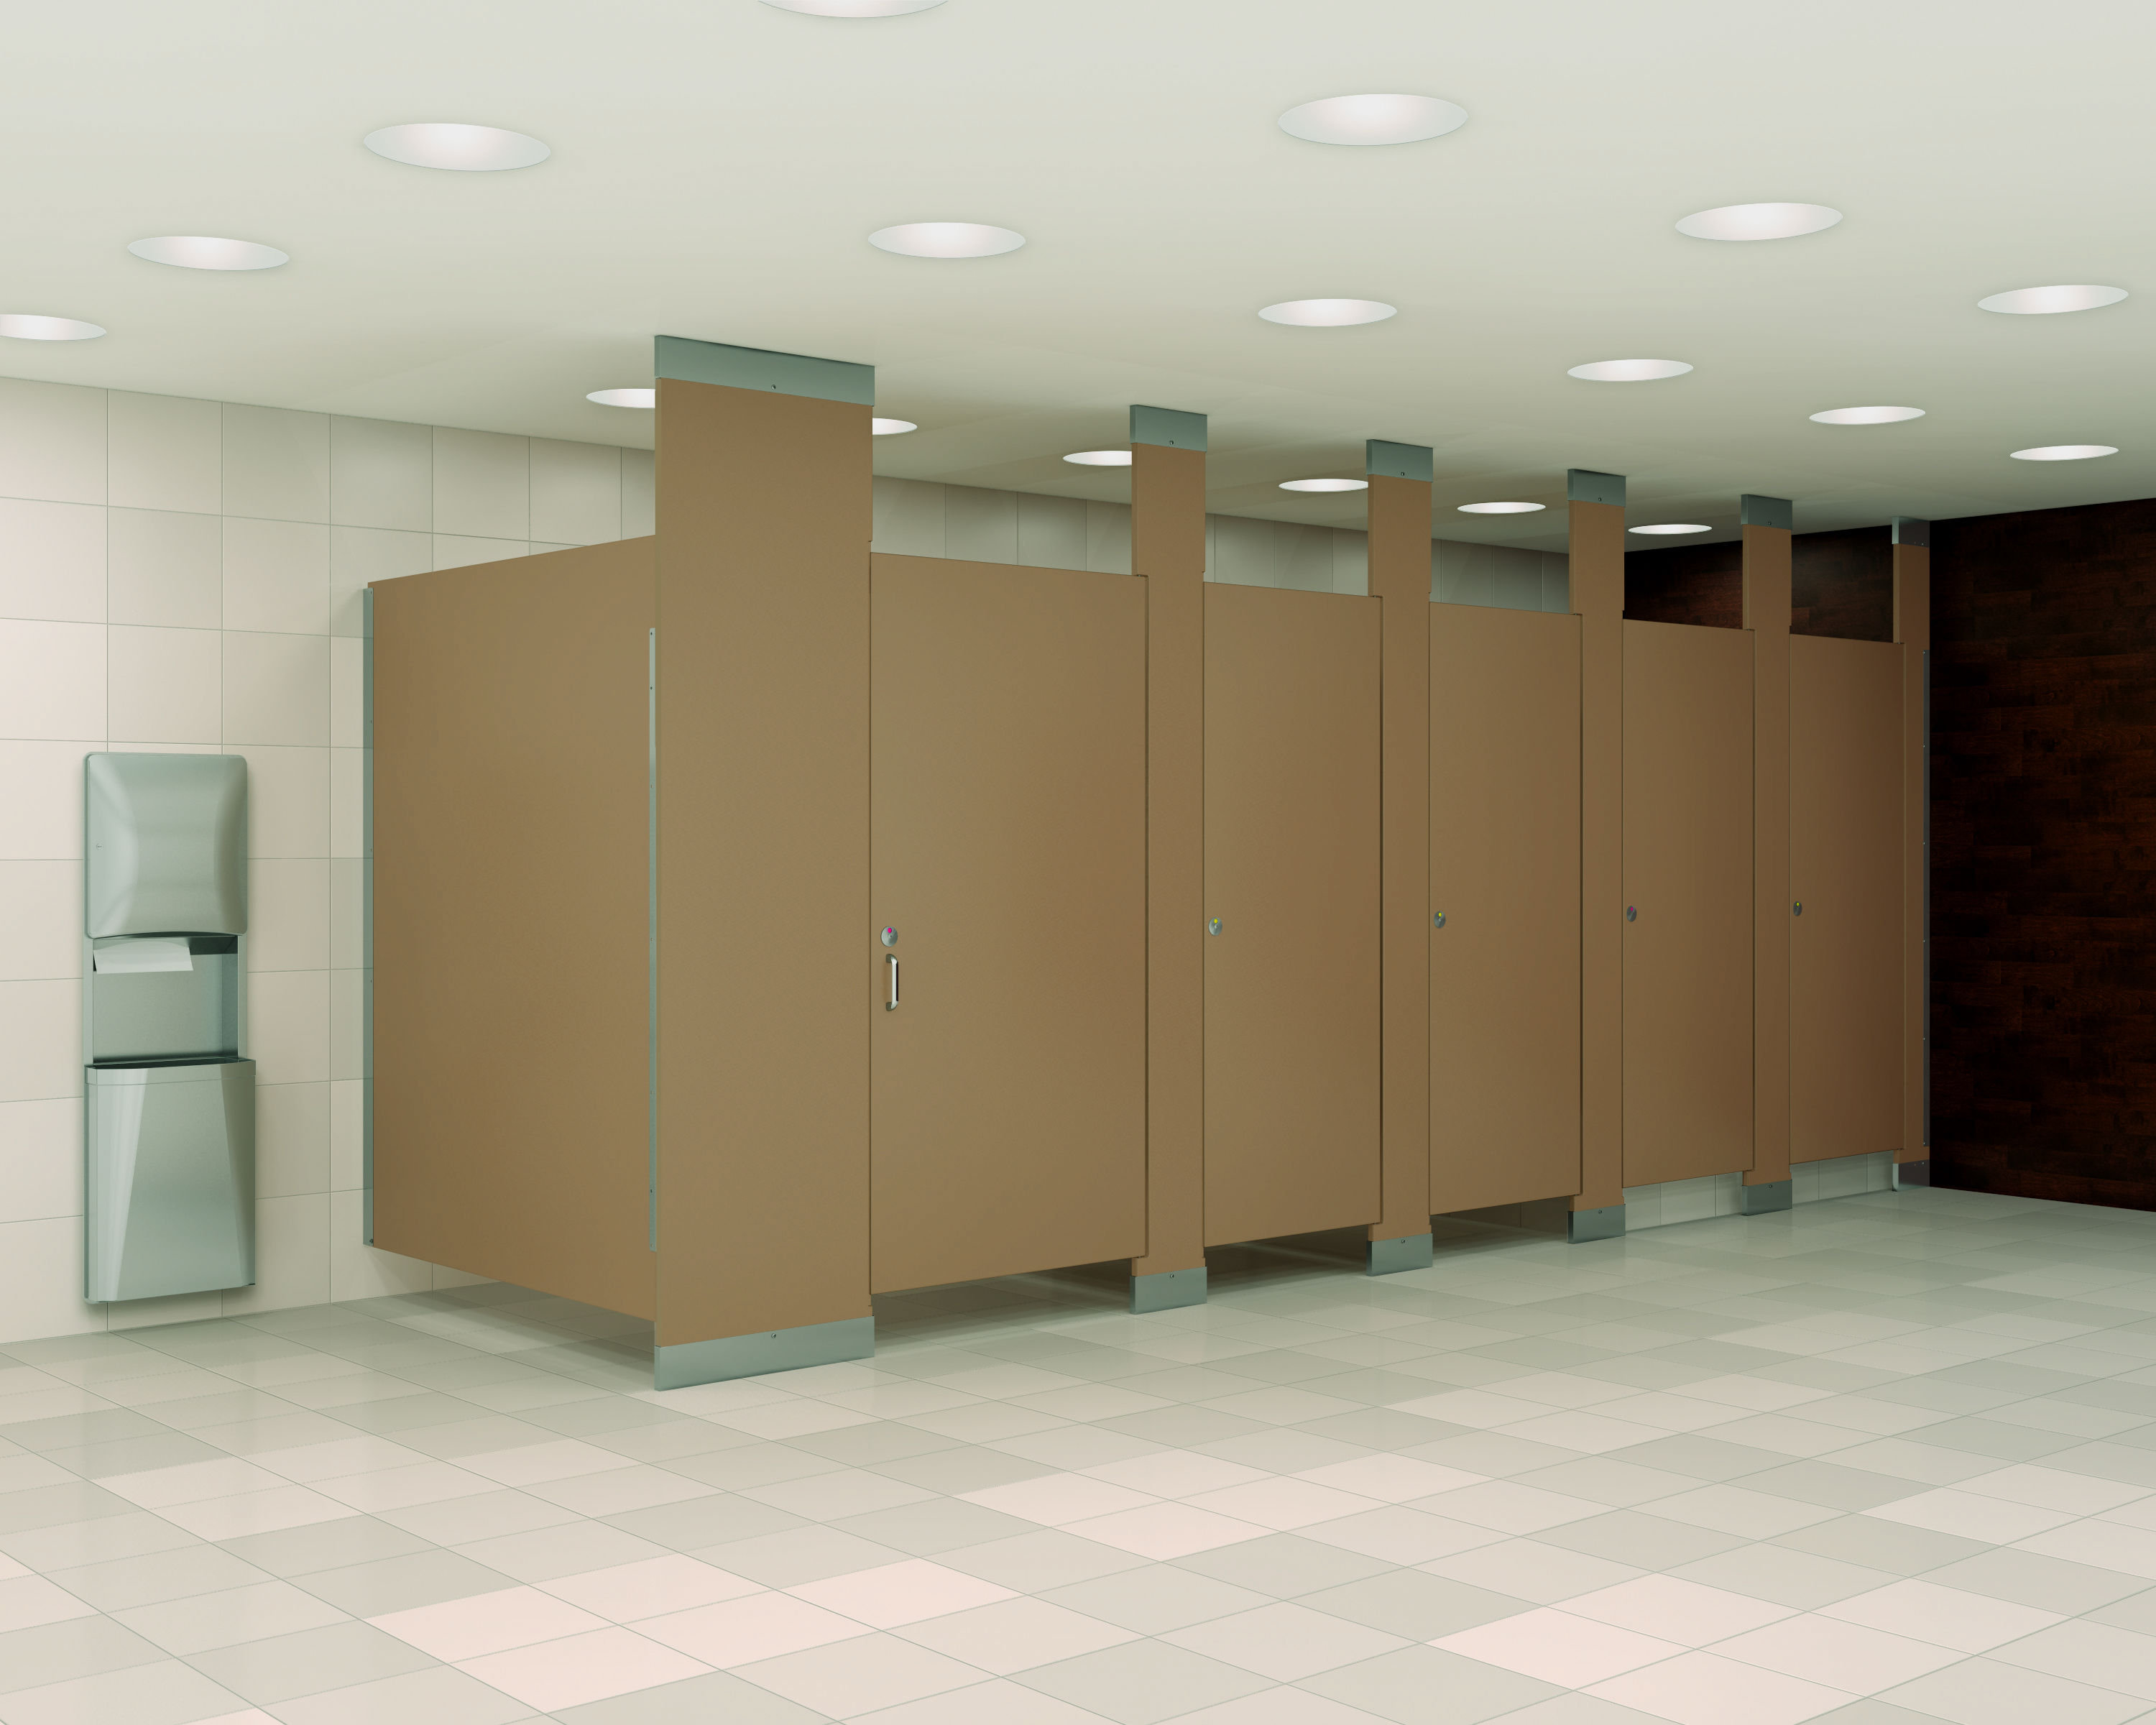 Bathroom Partitions Prices commercial public restroom toilet dividers sales & design |